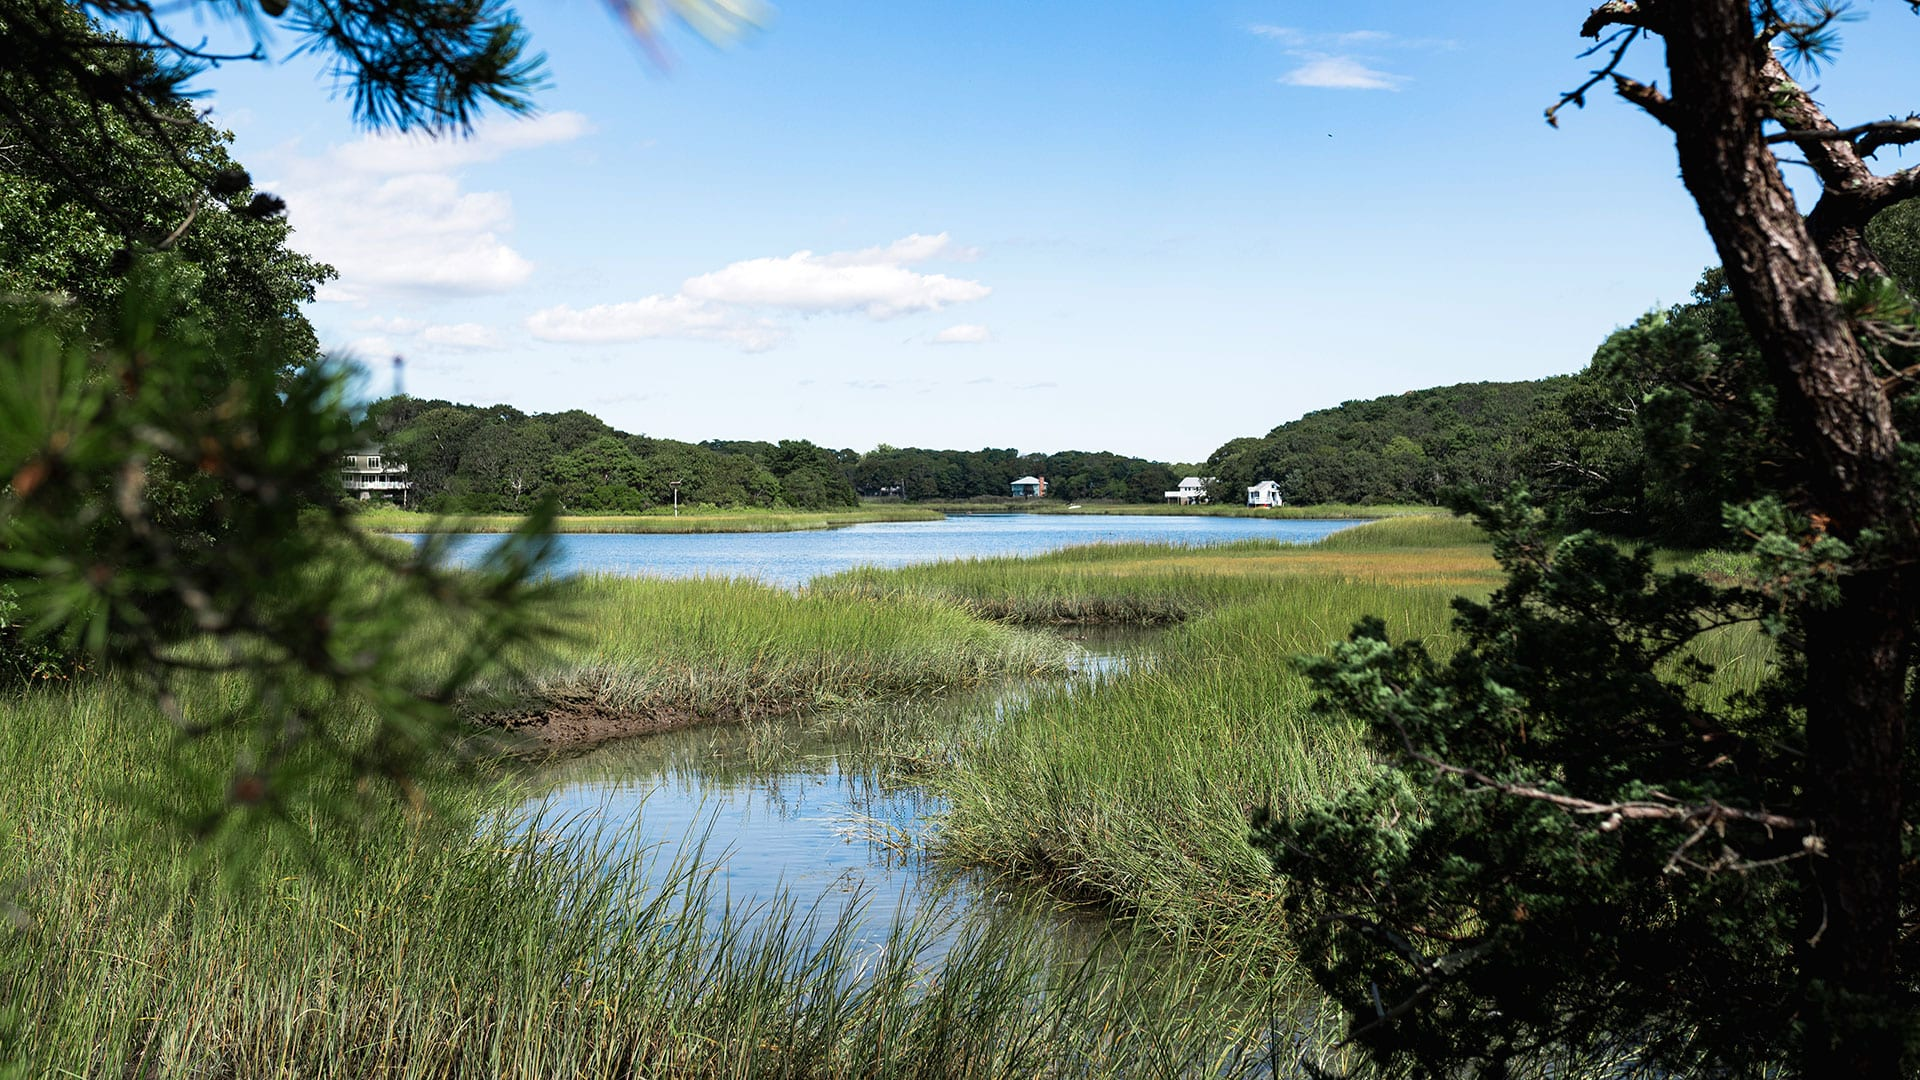 The quiet inlets of Wild Harbor were once saturated by a portion of the oil spilled by the barge Florida. Today WHOI scientists say the marsh ecosystem has made an stunning recovery. (Photo by Daniel Hentz, Woods Hole Oceanographic Institution)